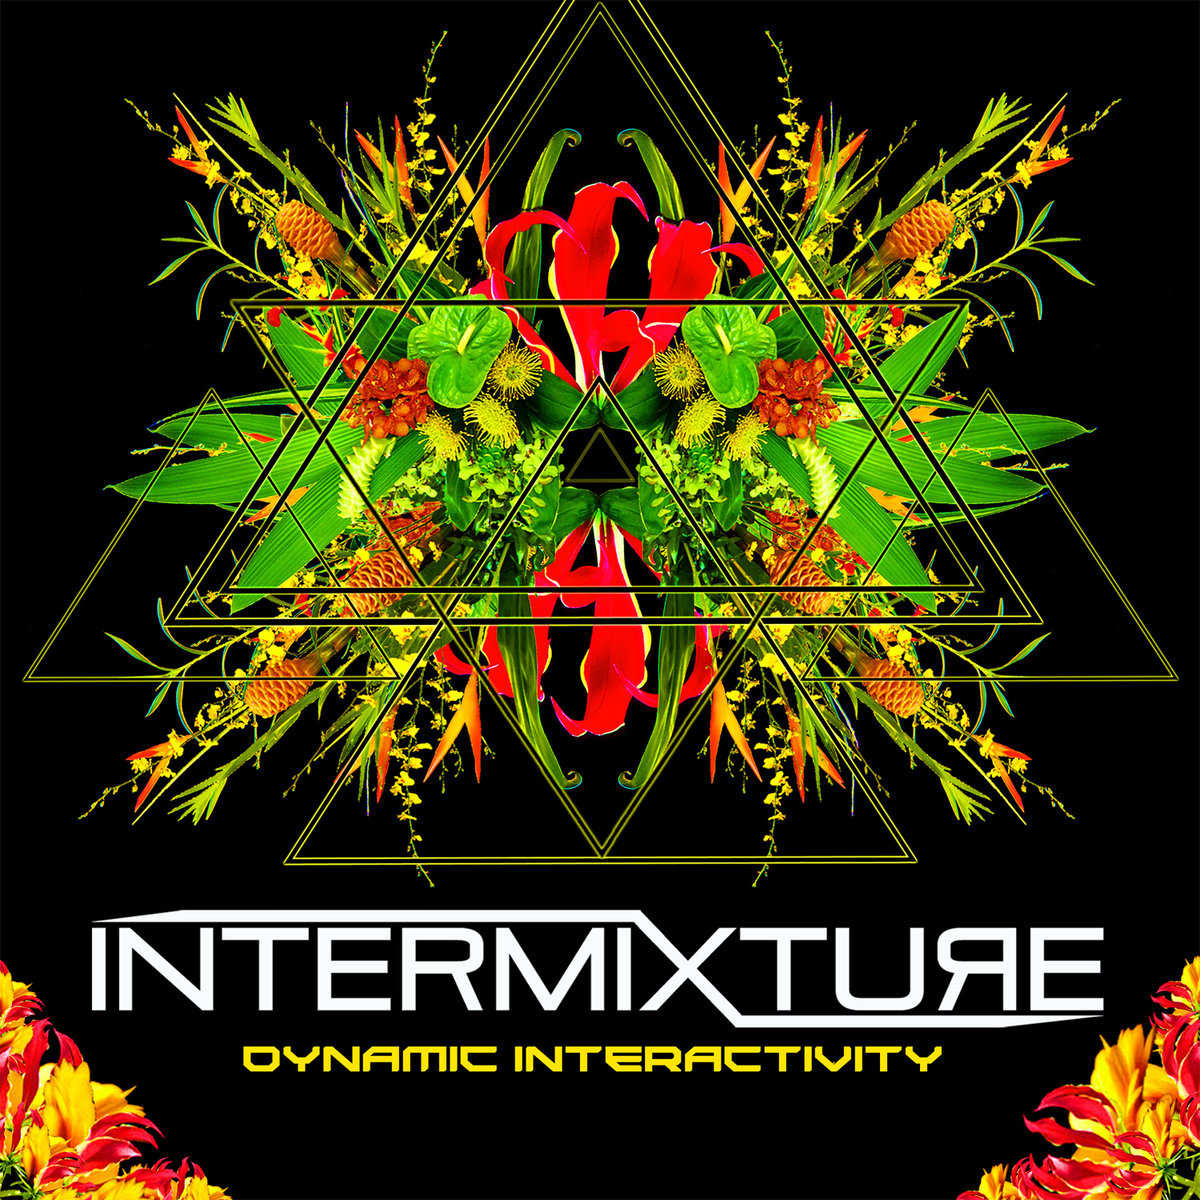 Intermixture - Dynamic Interactivity @ 'Dynamic Interactivity' album (bass, electronic)